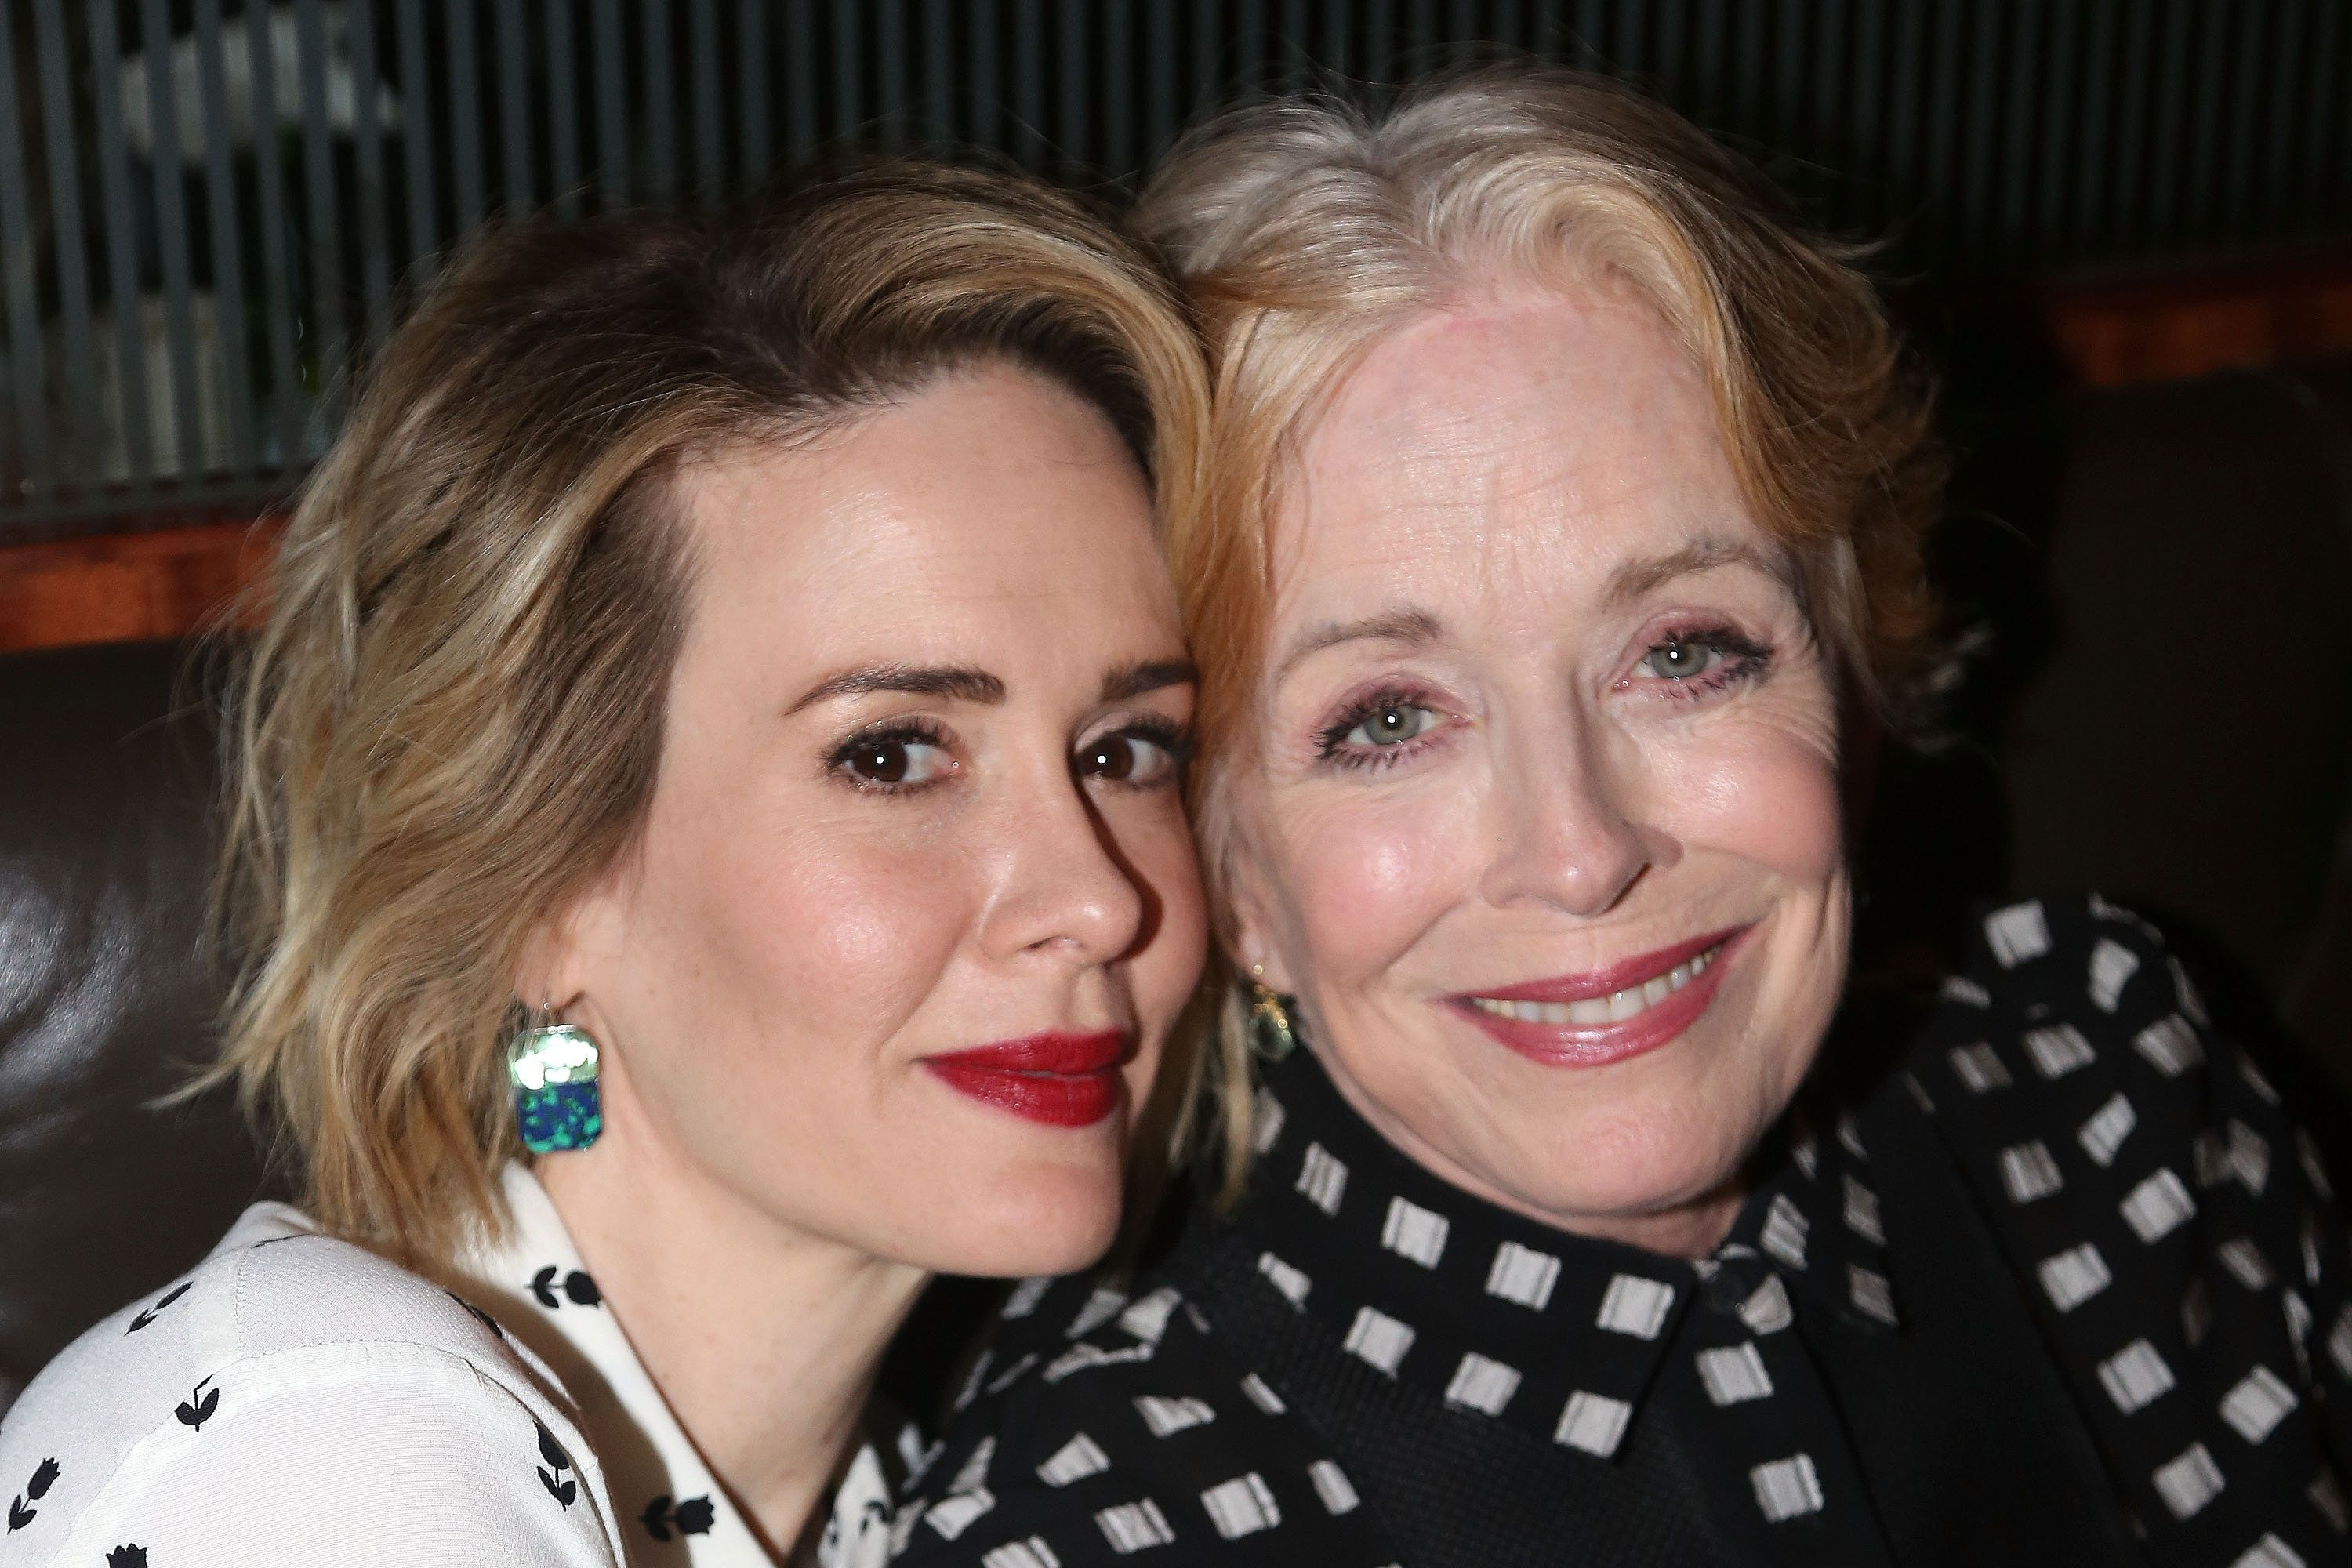 NEW YORK, NY - OCTOBER 20:  (EXCLUSIVE COVERAGE) Sarah Paulson and Holland Taylor pose at the Opening Night After-party for 'Ripcord' at The Brasserie 8 and 1/2 on October 20, 2015 in New York City.  (Photo by Bruce Glikas/FilmMagic)